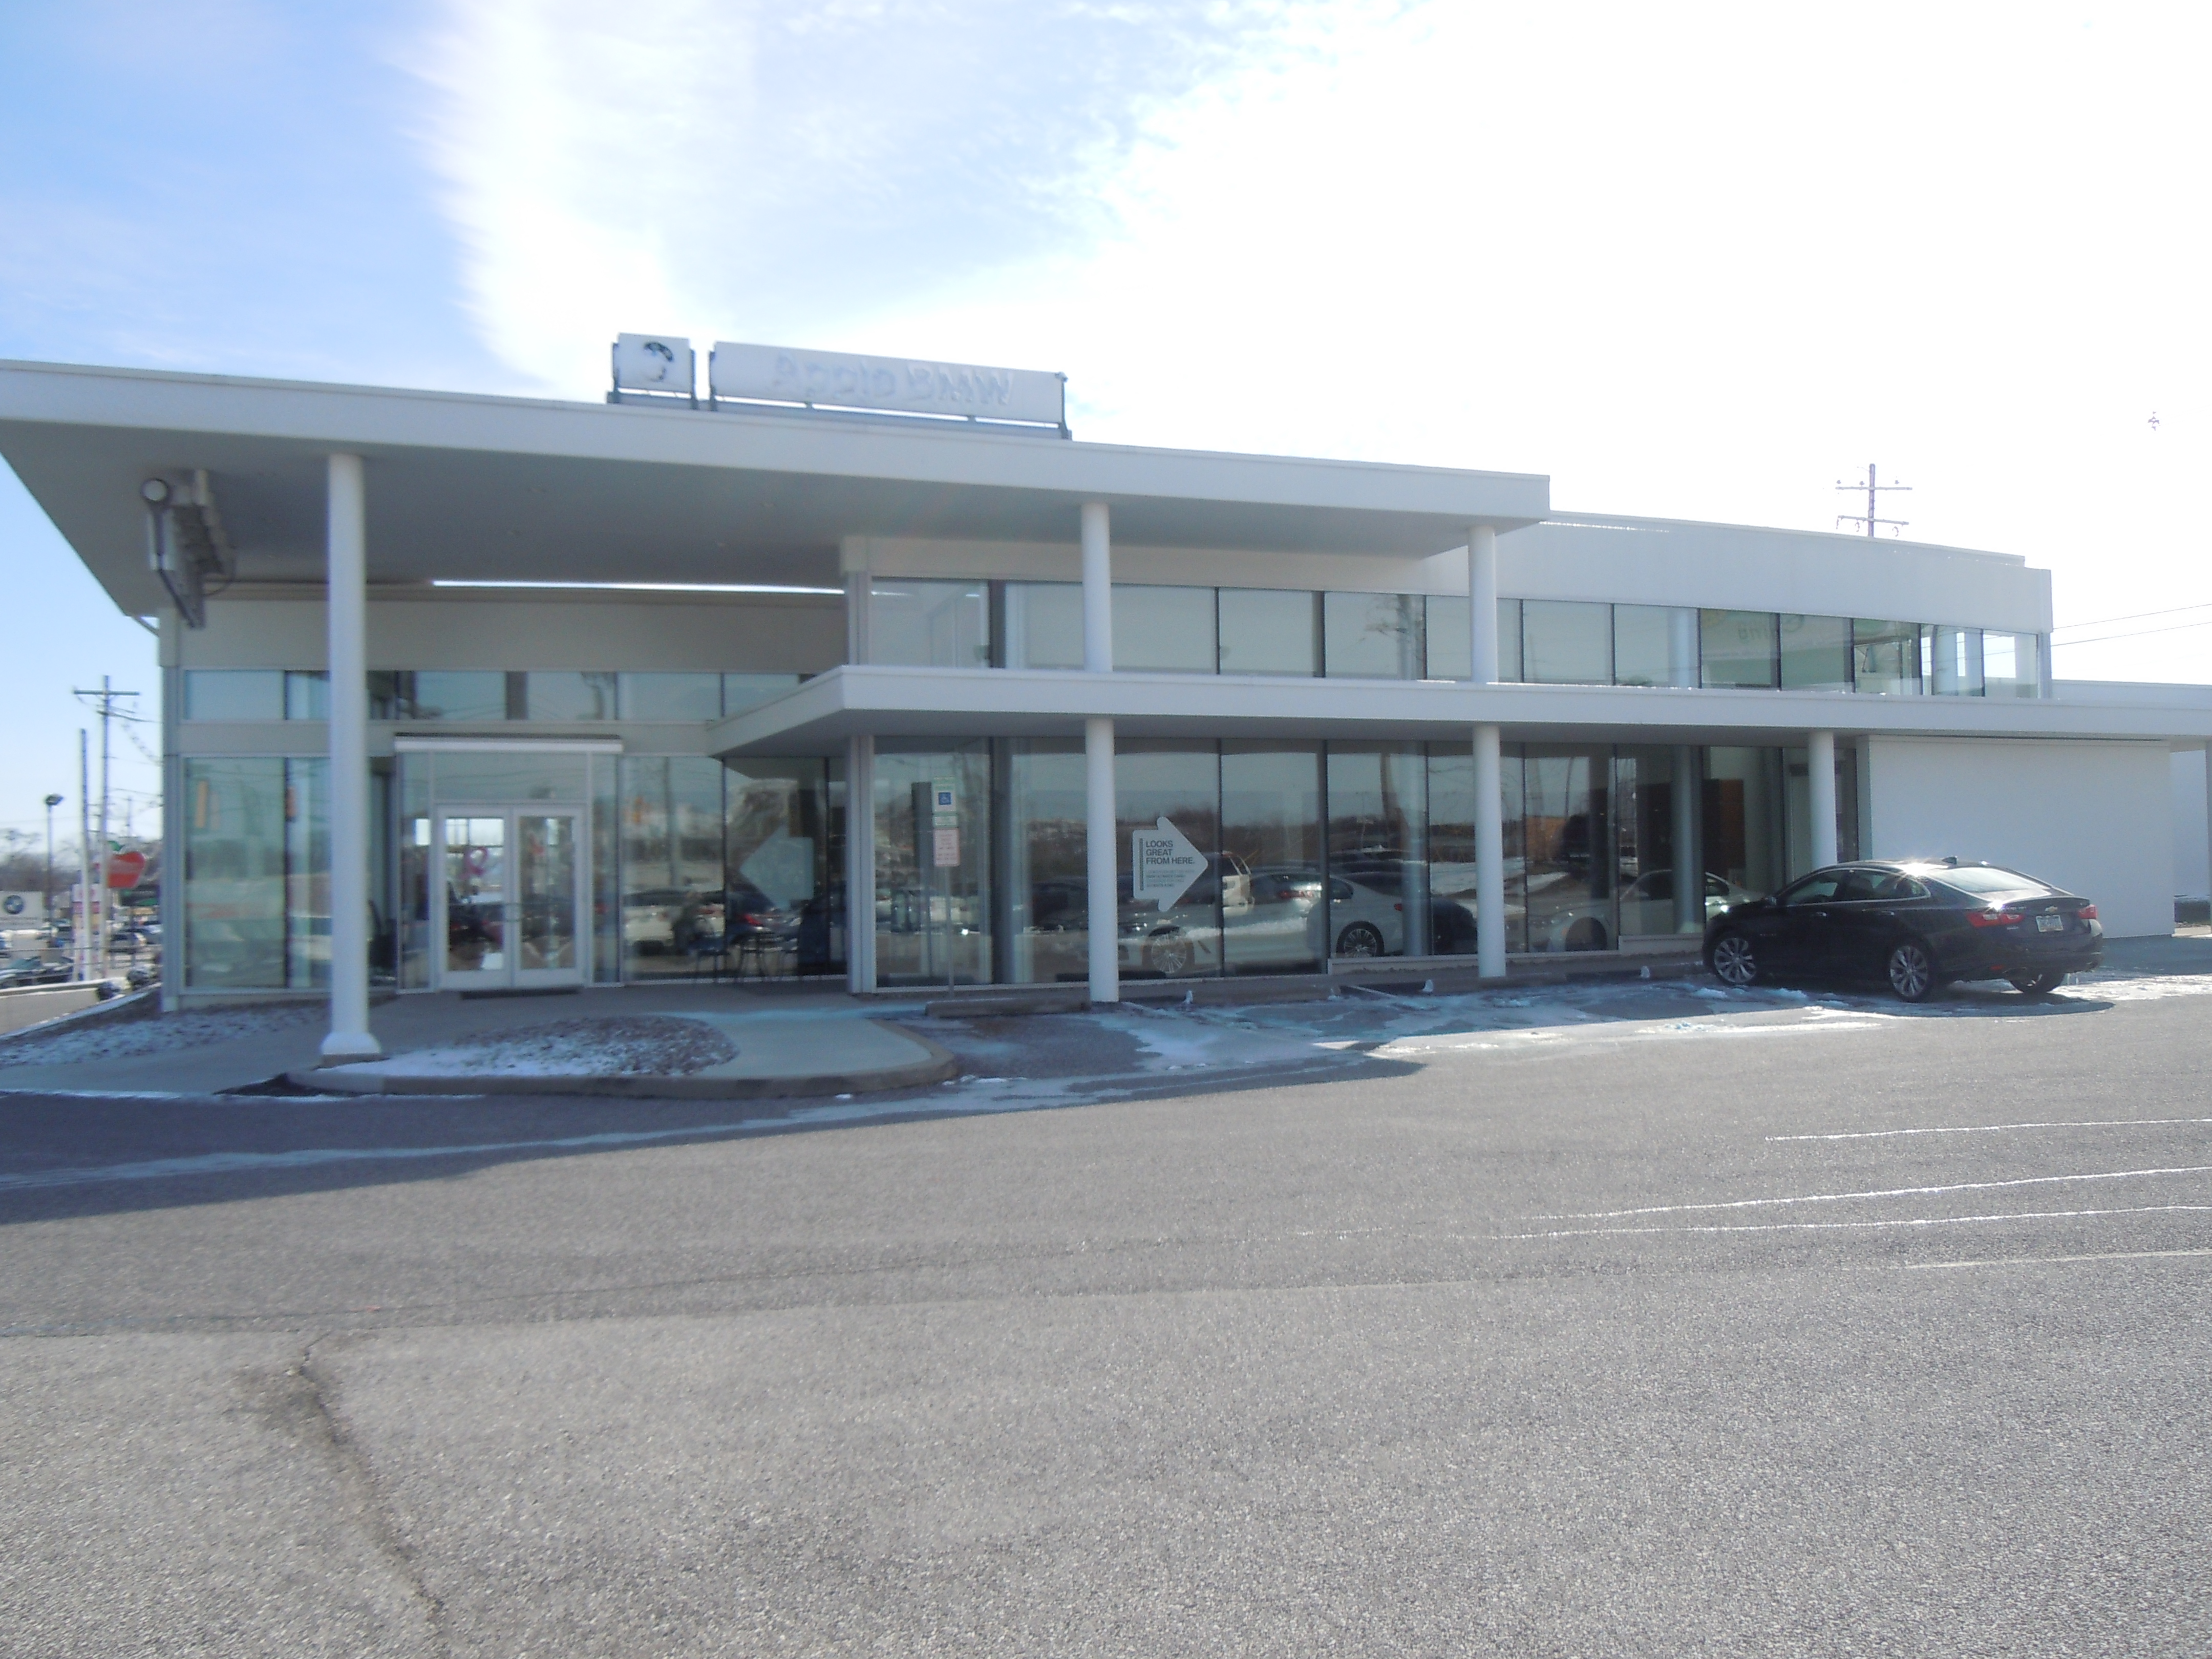 Napa Car Dealer York Pa